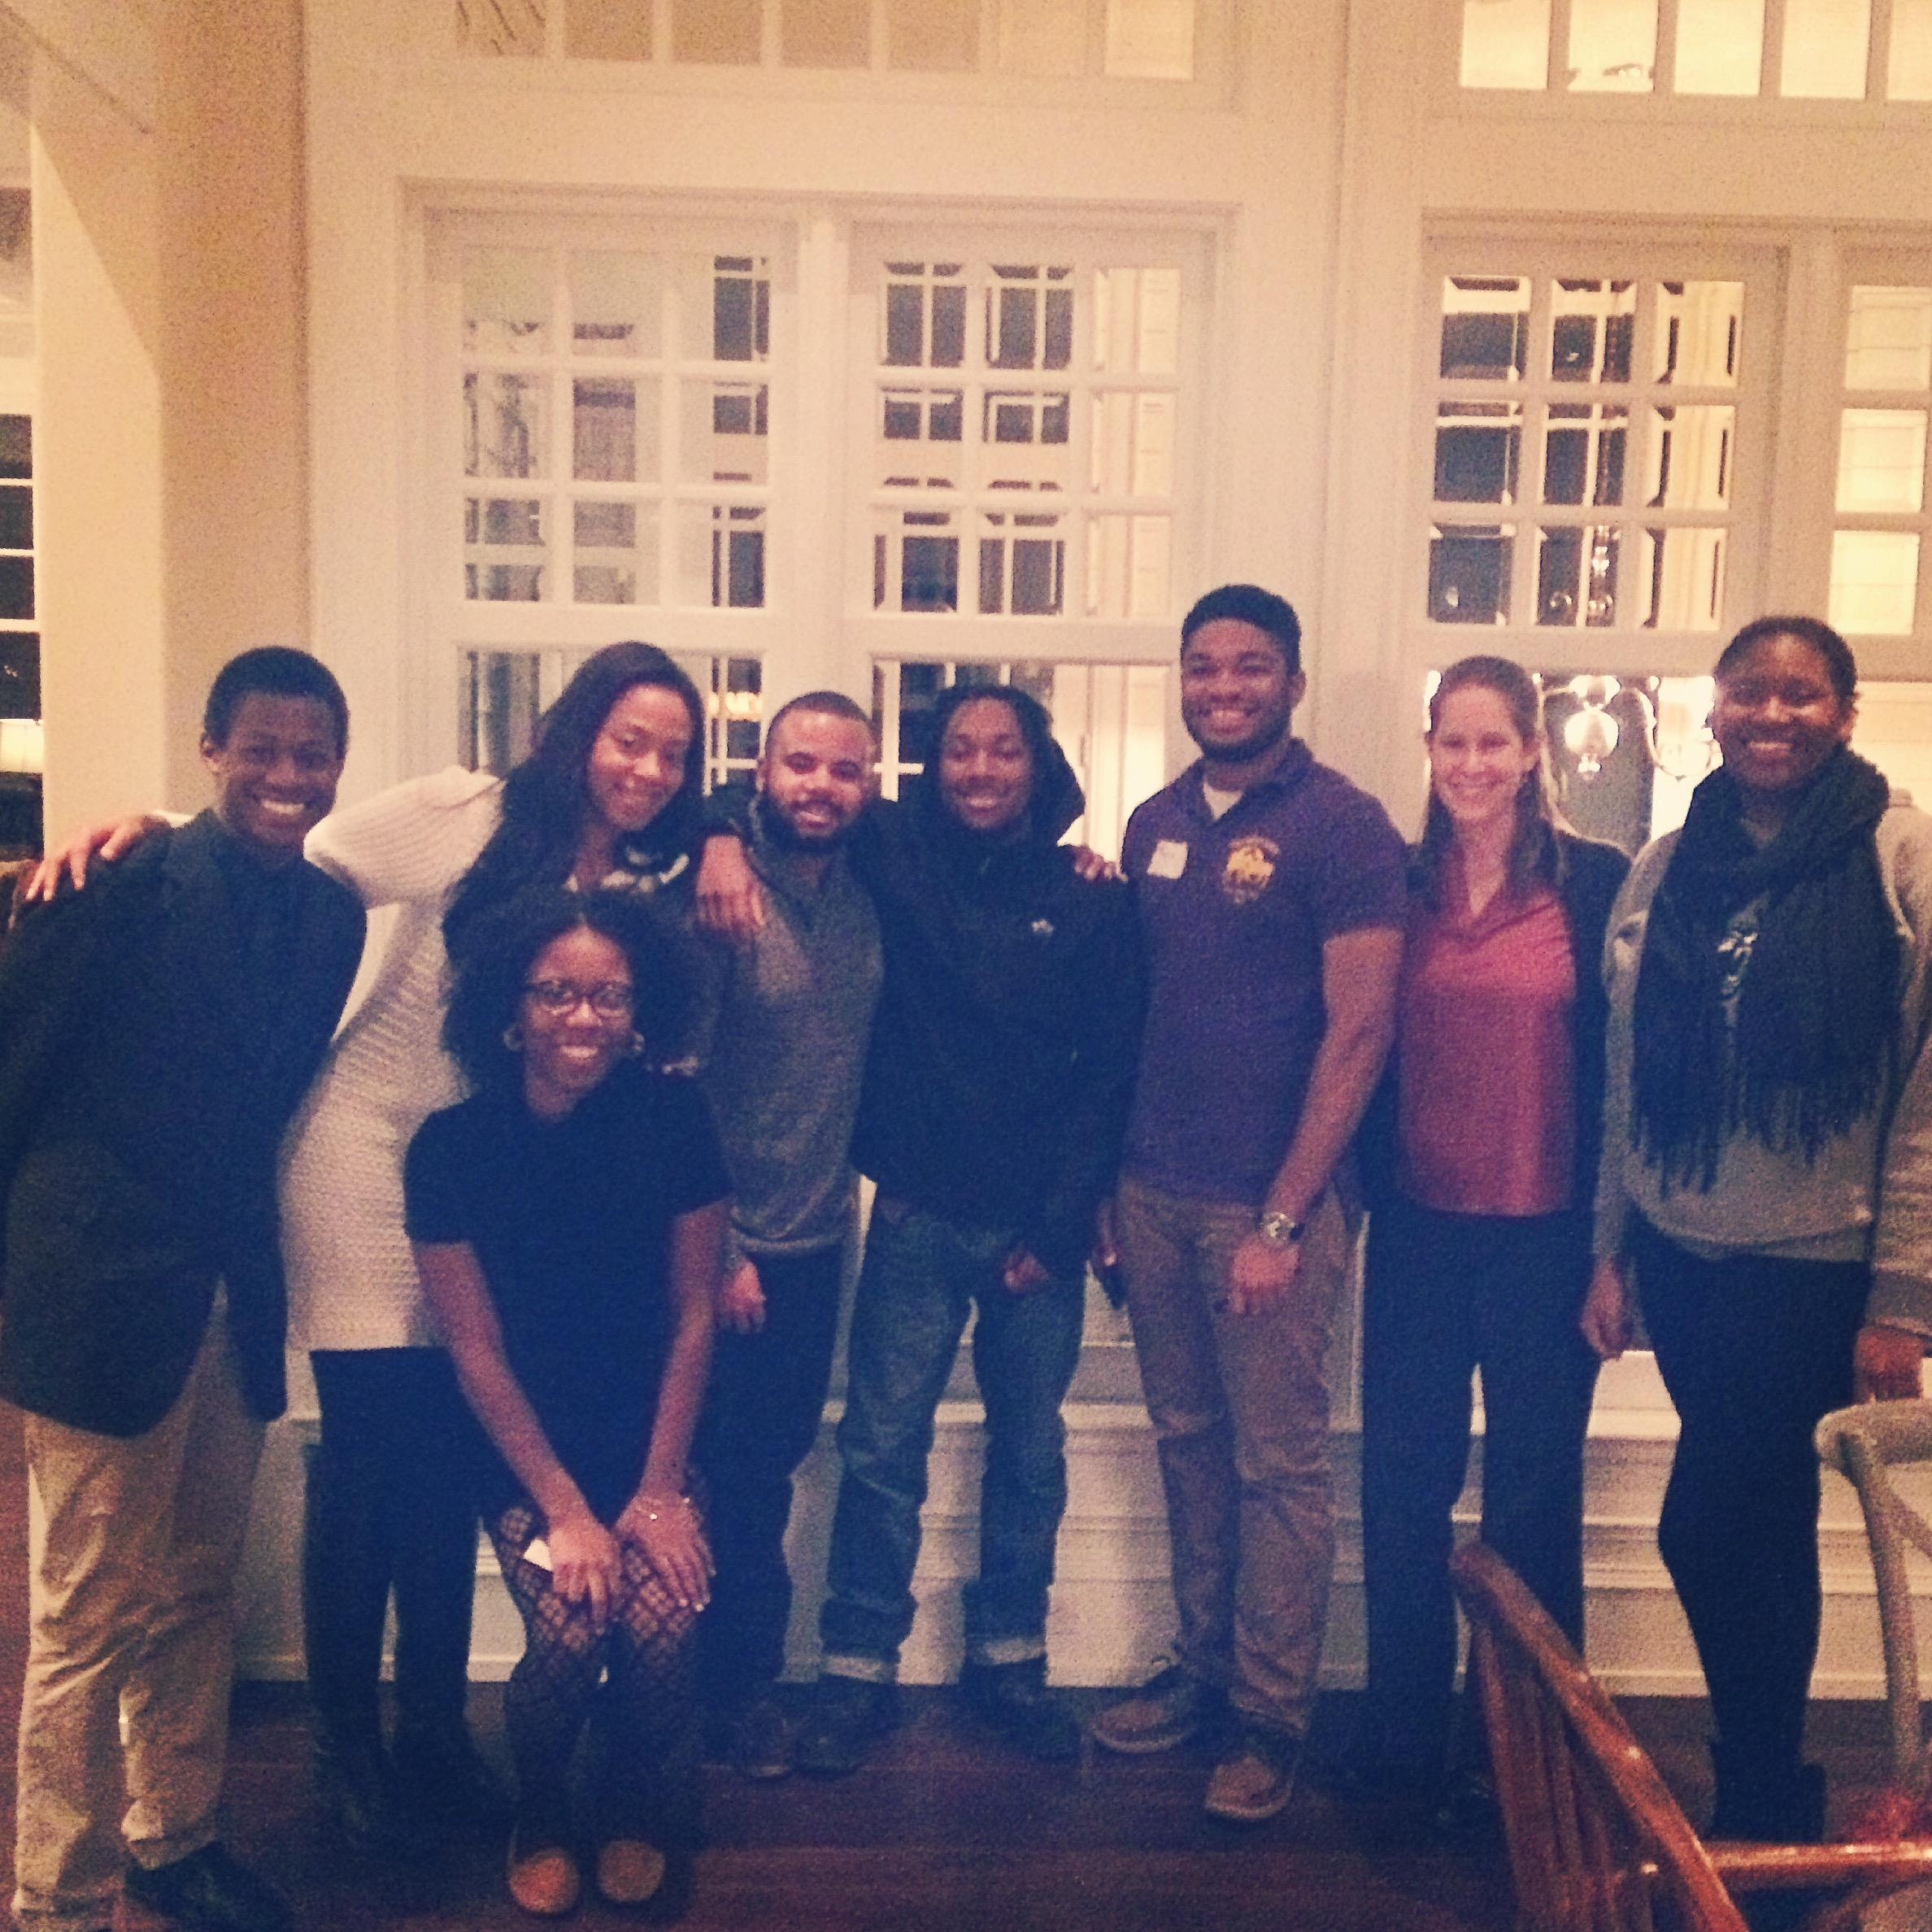 When graduates from SEED DC and SEED MD enroll in the same college, they benefit from a shared SEED community...and visits from their college advisors.